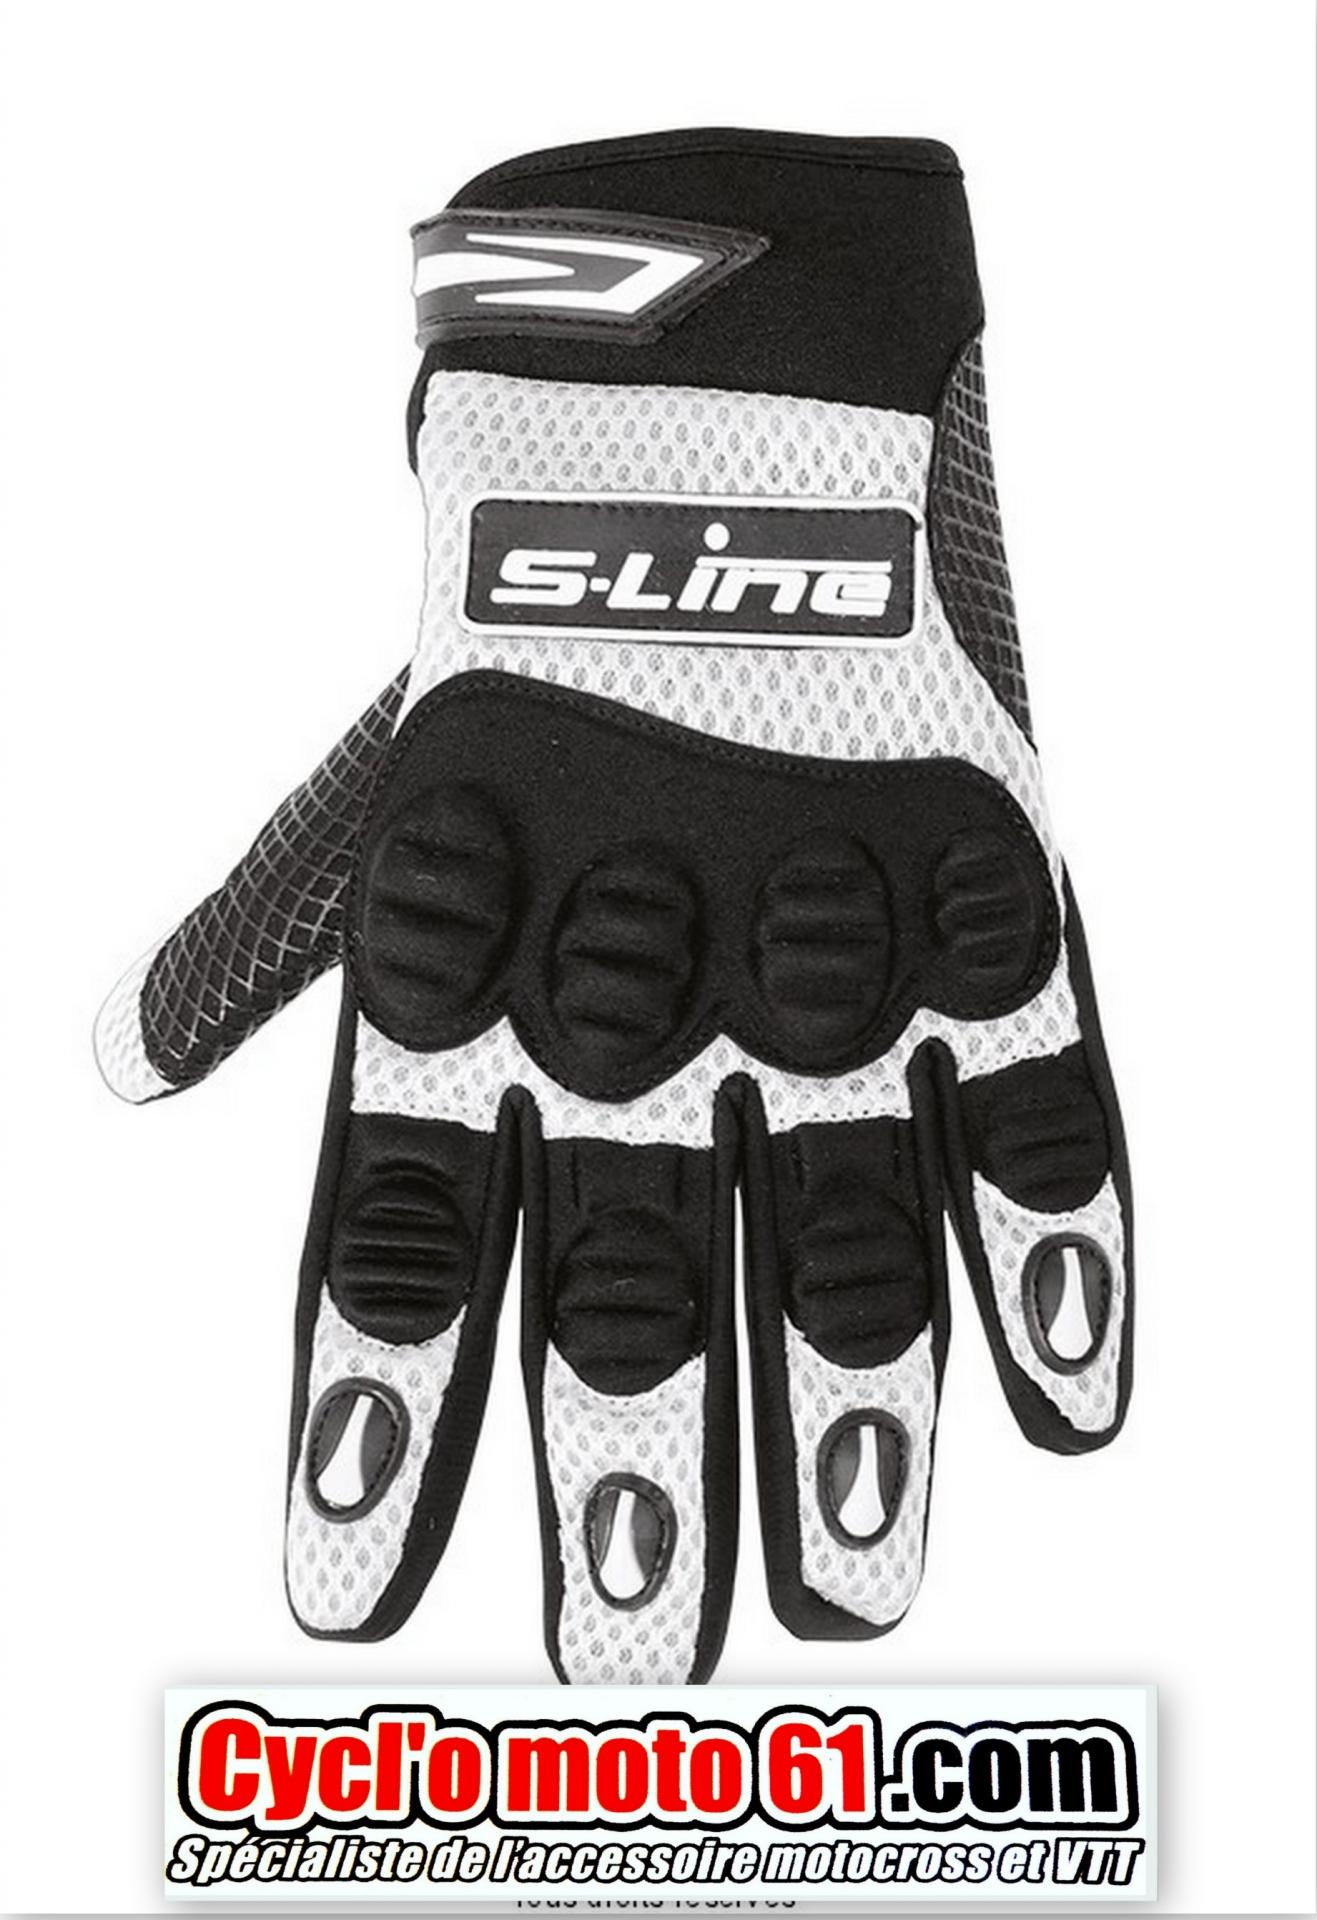 Equipement sifam6